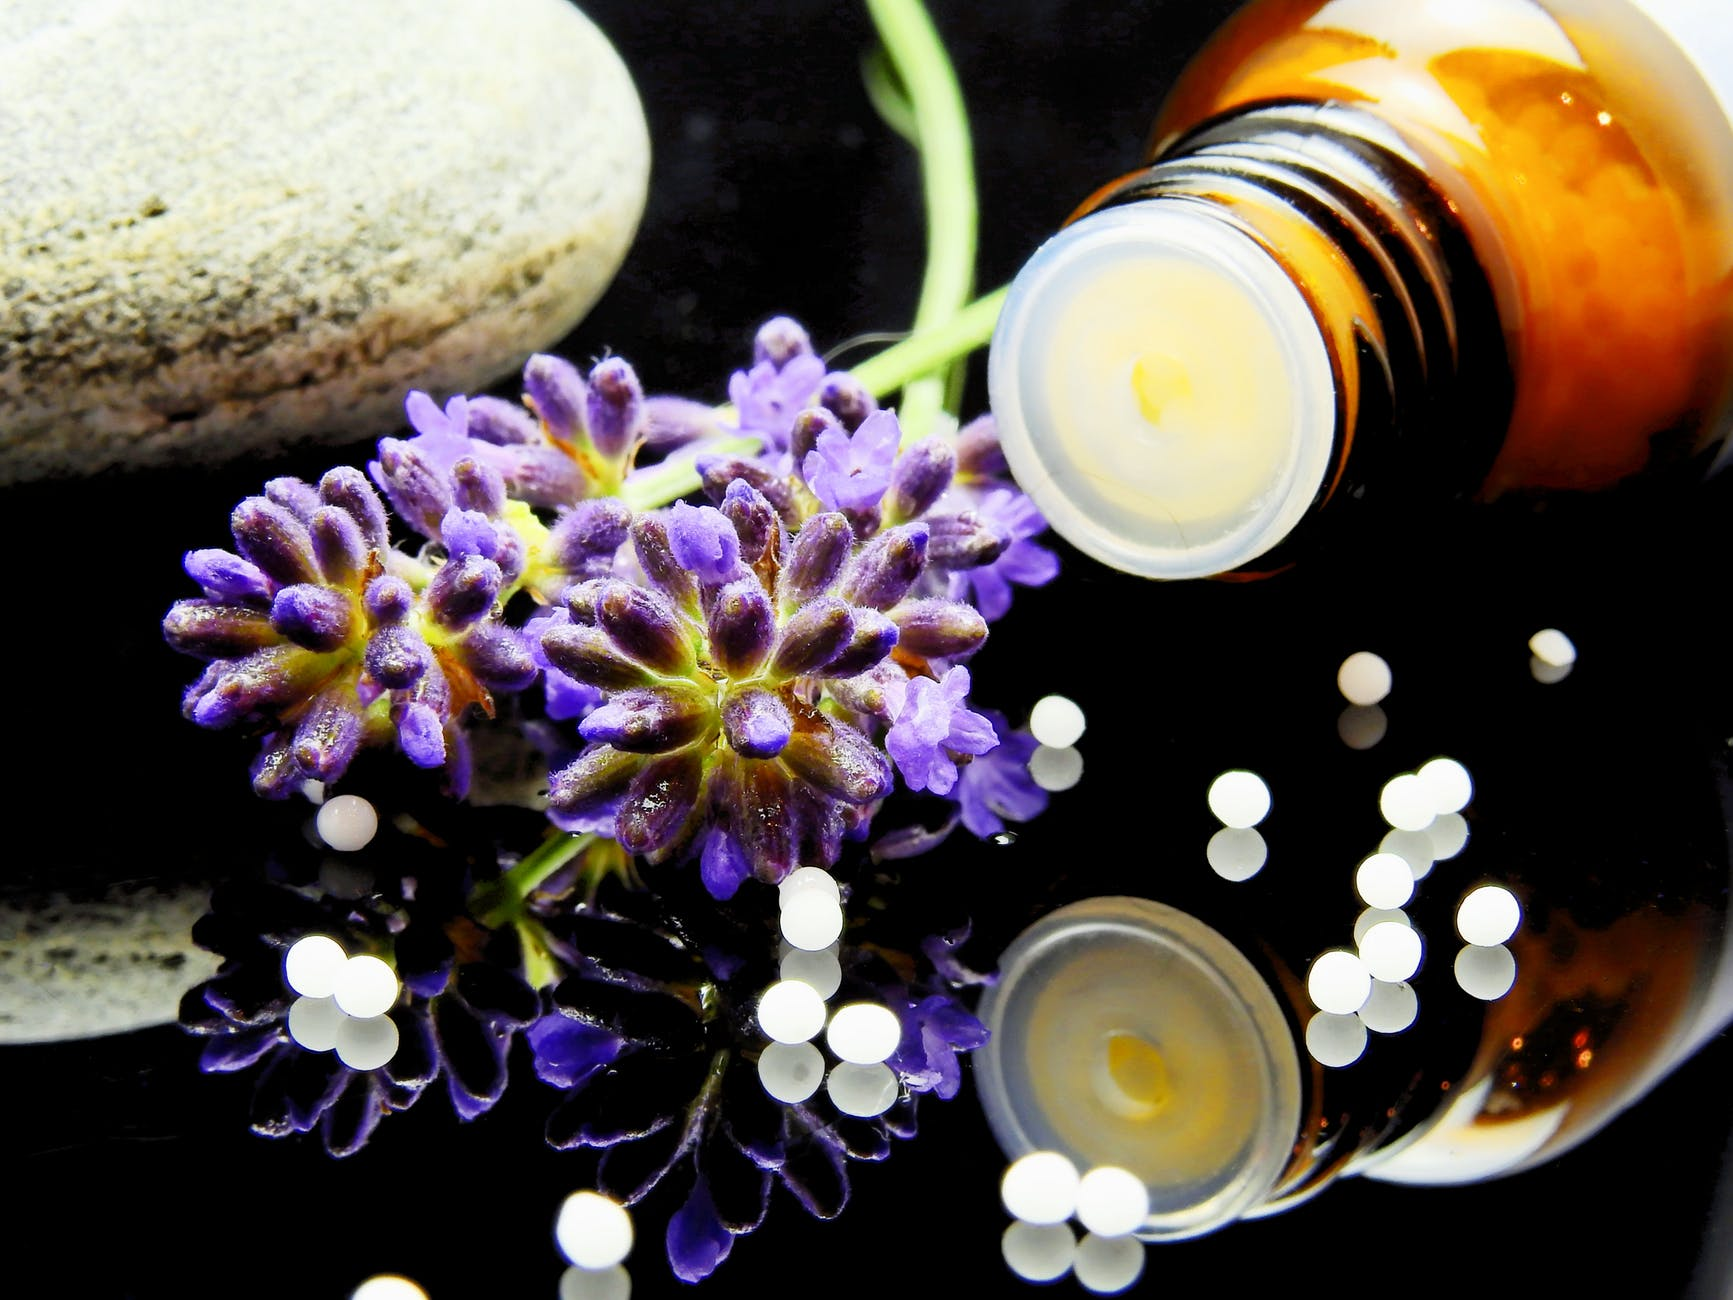 Eager to try out Aromatherapy? THESE are the side effects you should beware of